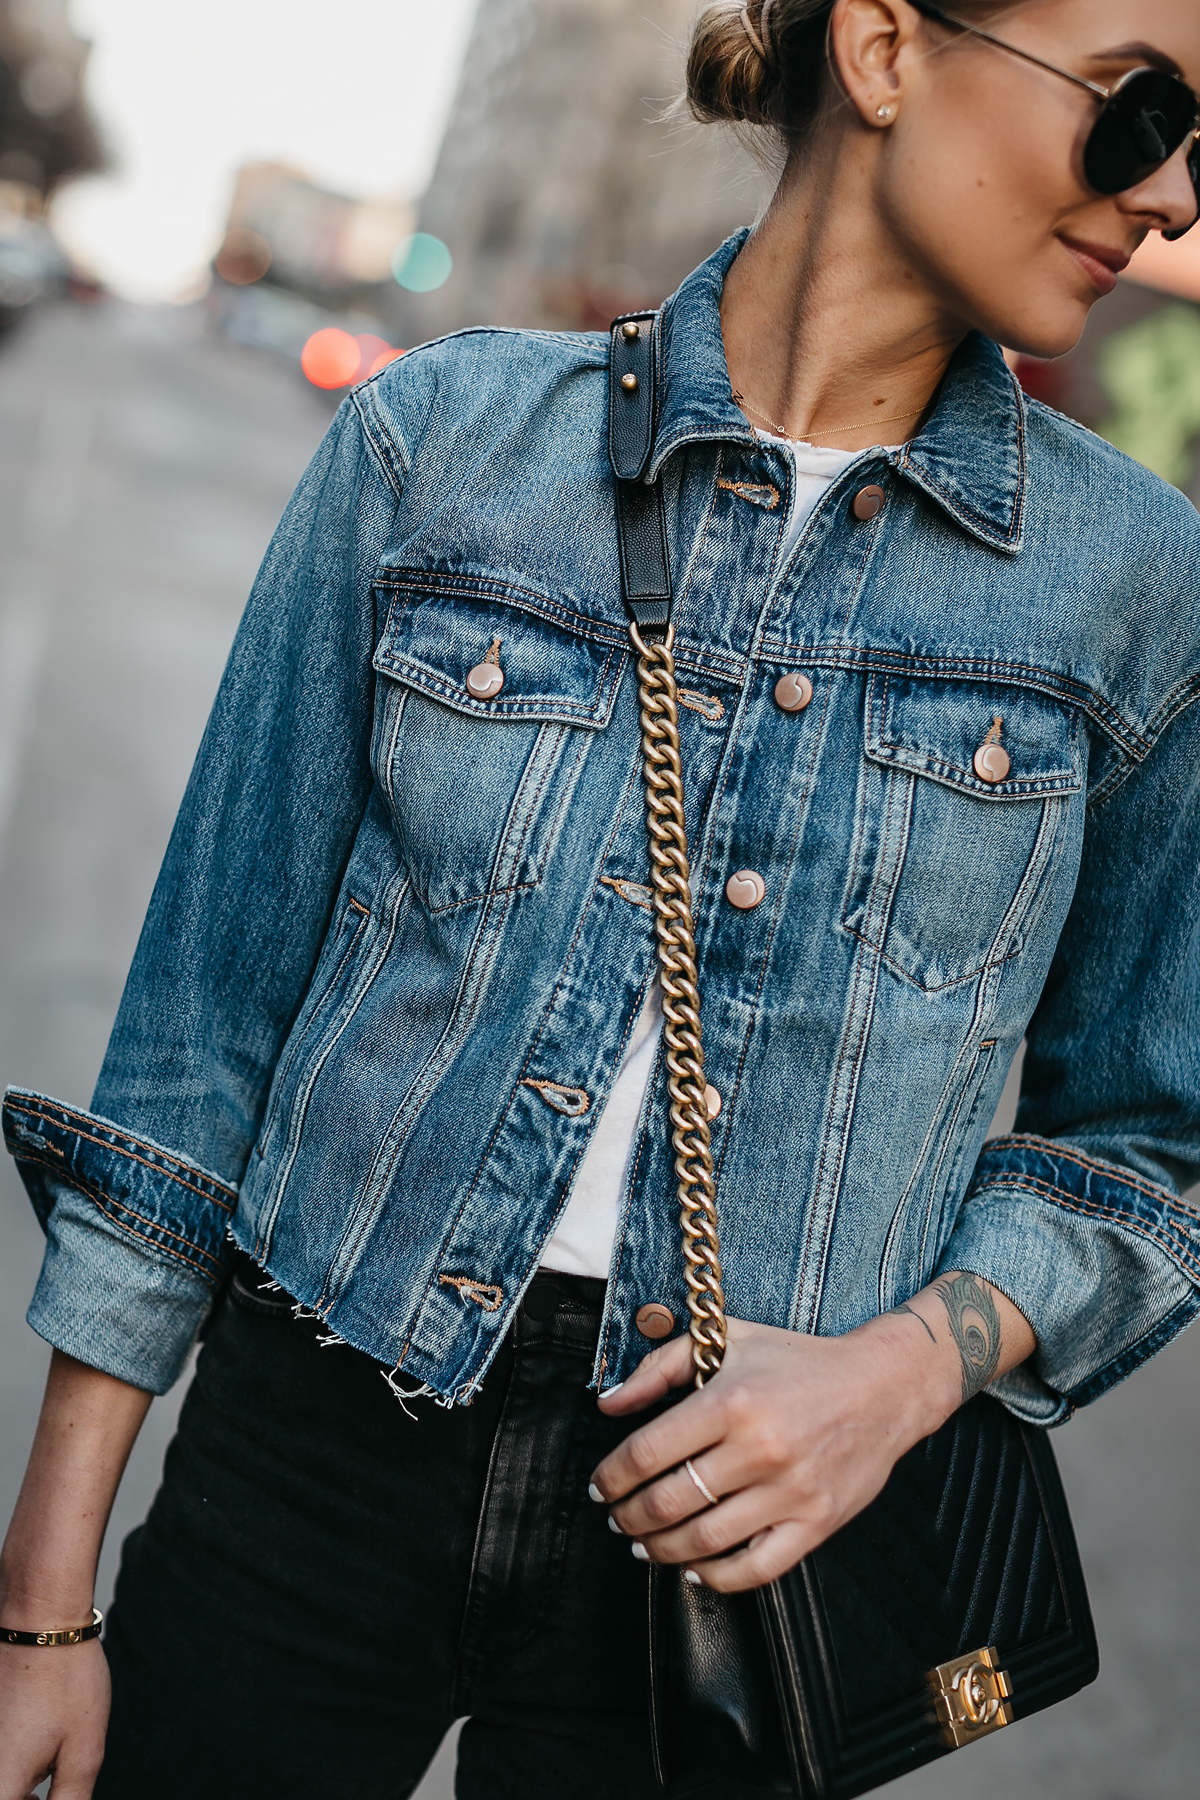 Blonde Woman Wearing Joes Jeans Denim Jacket Chanel Black Boy Bag Celine Aviator Sunglasses Fashion Jackson Dallas Blogger Fashion Blogger Street Style